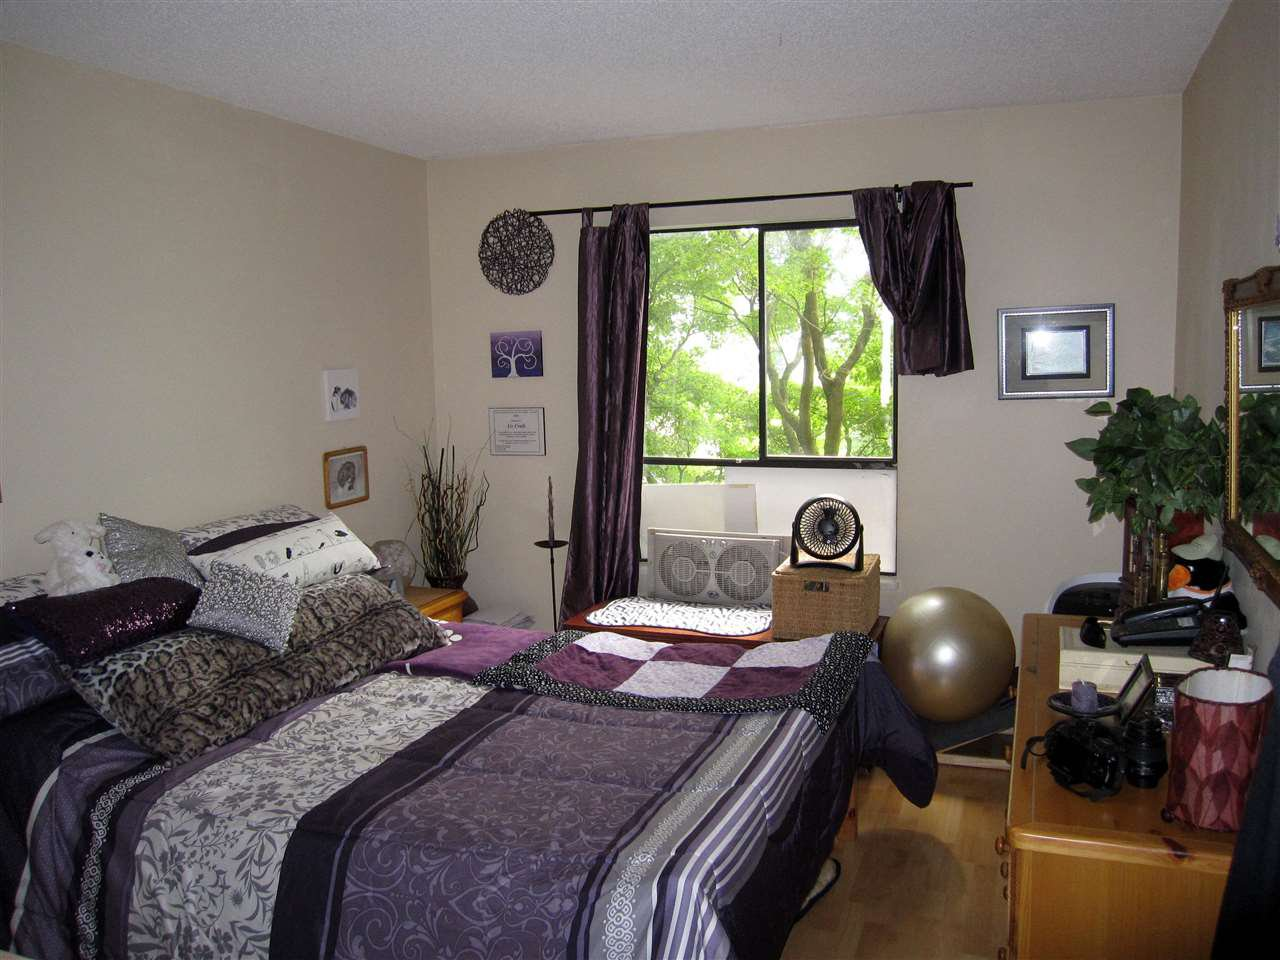 """Photo 9: Photos: 203 109 TENTH Street in New Westminster: Uptown NW Condo for sale in """"LANDGRO MANOR"""" : MLS®# R2181370"""